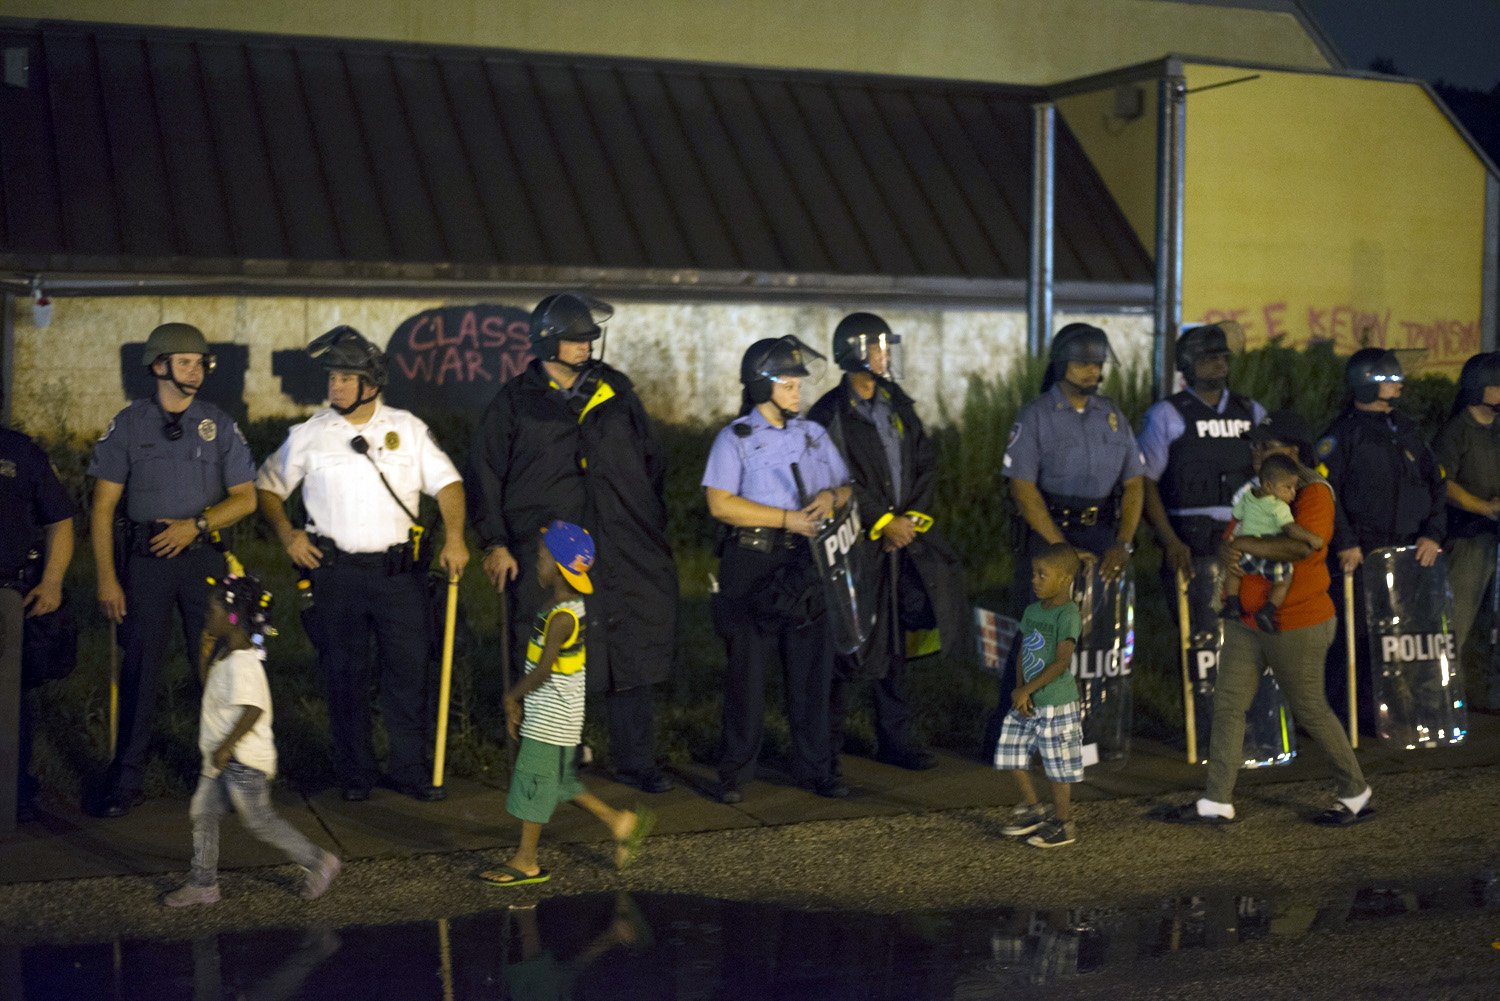 Children walk past police officers during a demonstration in Ferguson, Mo. on Aug. 16, 2014.